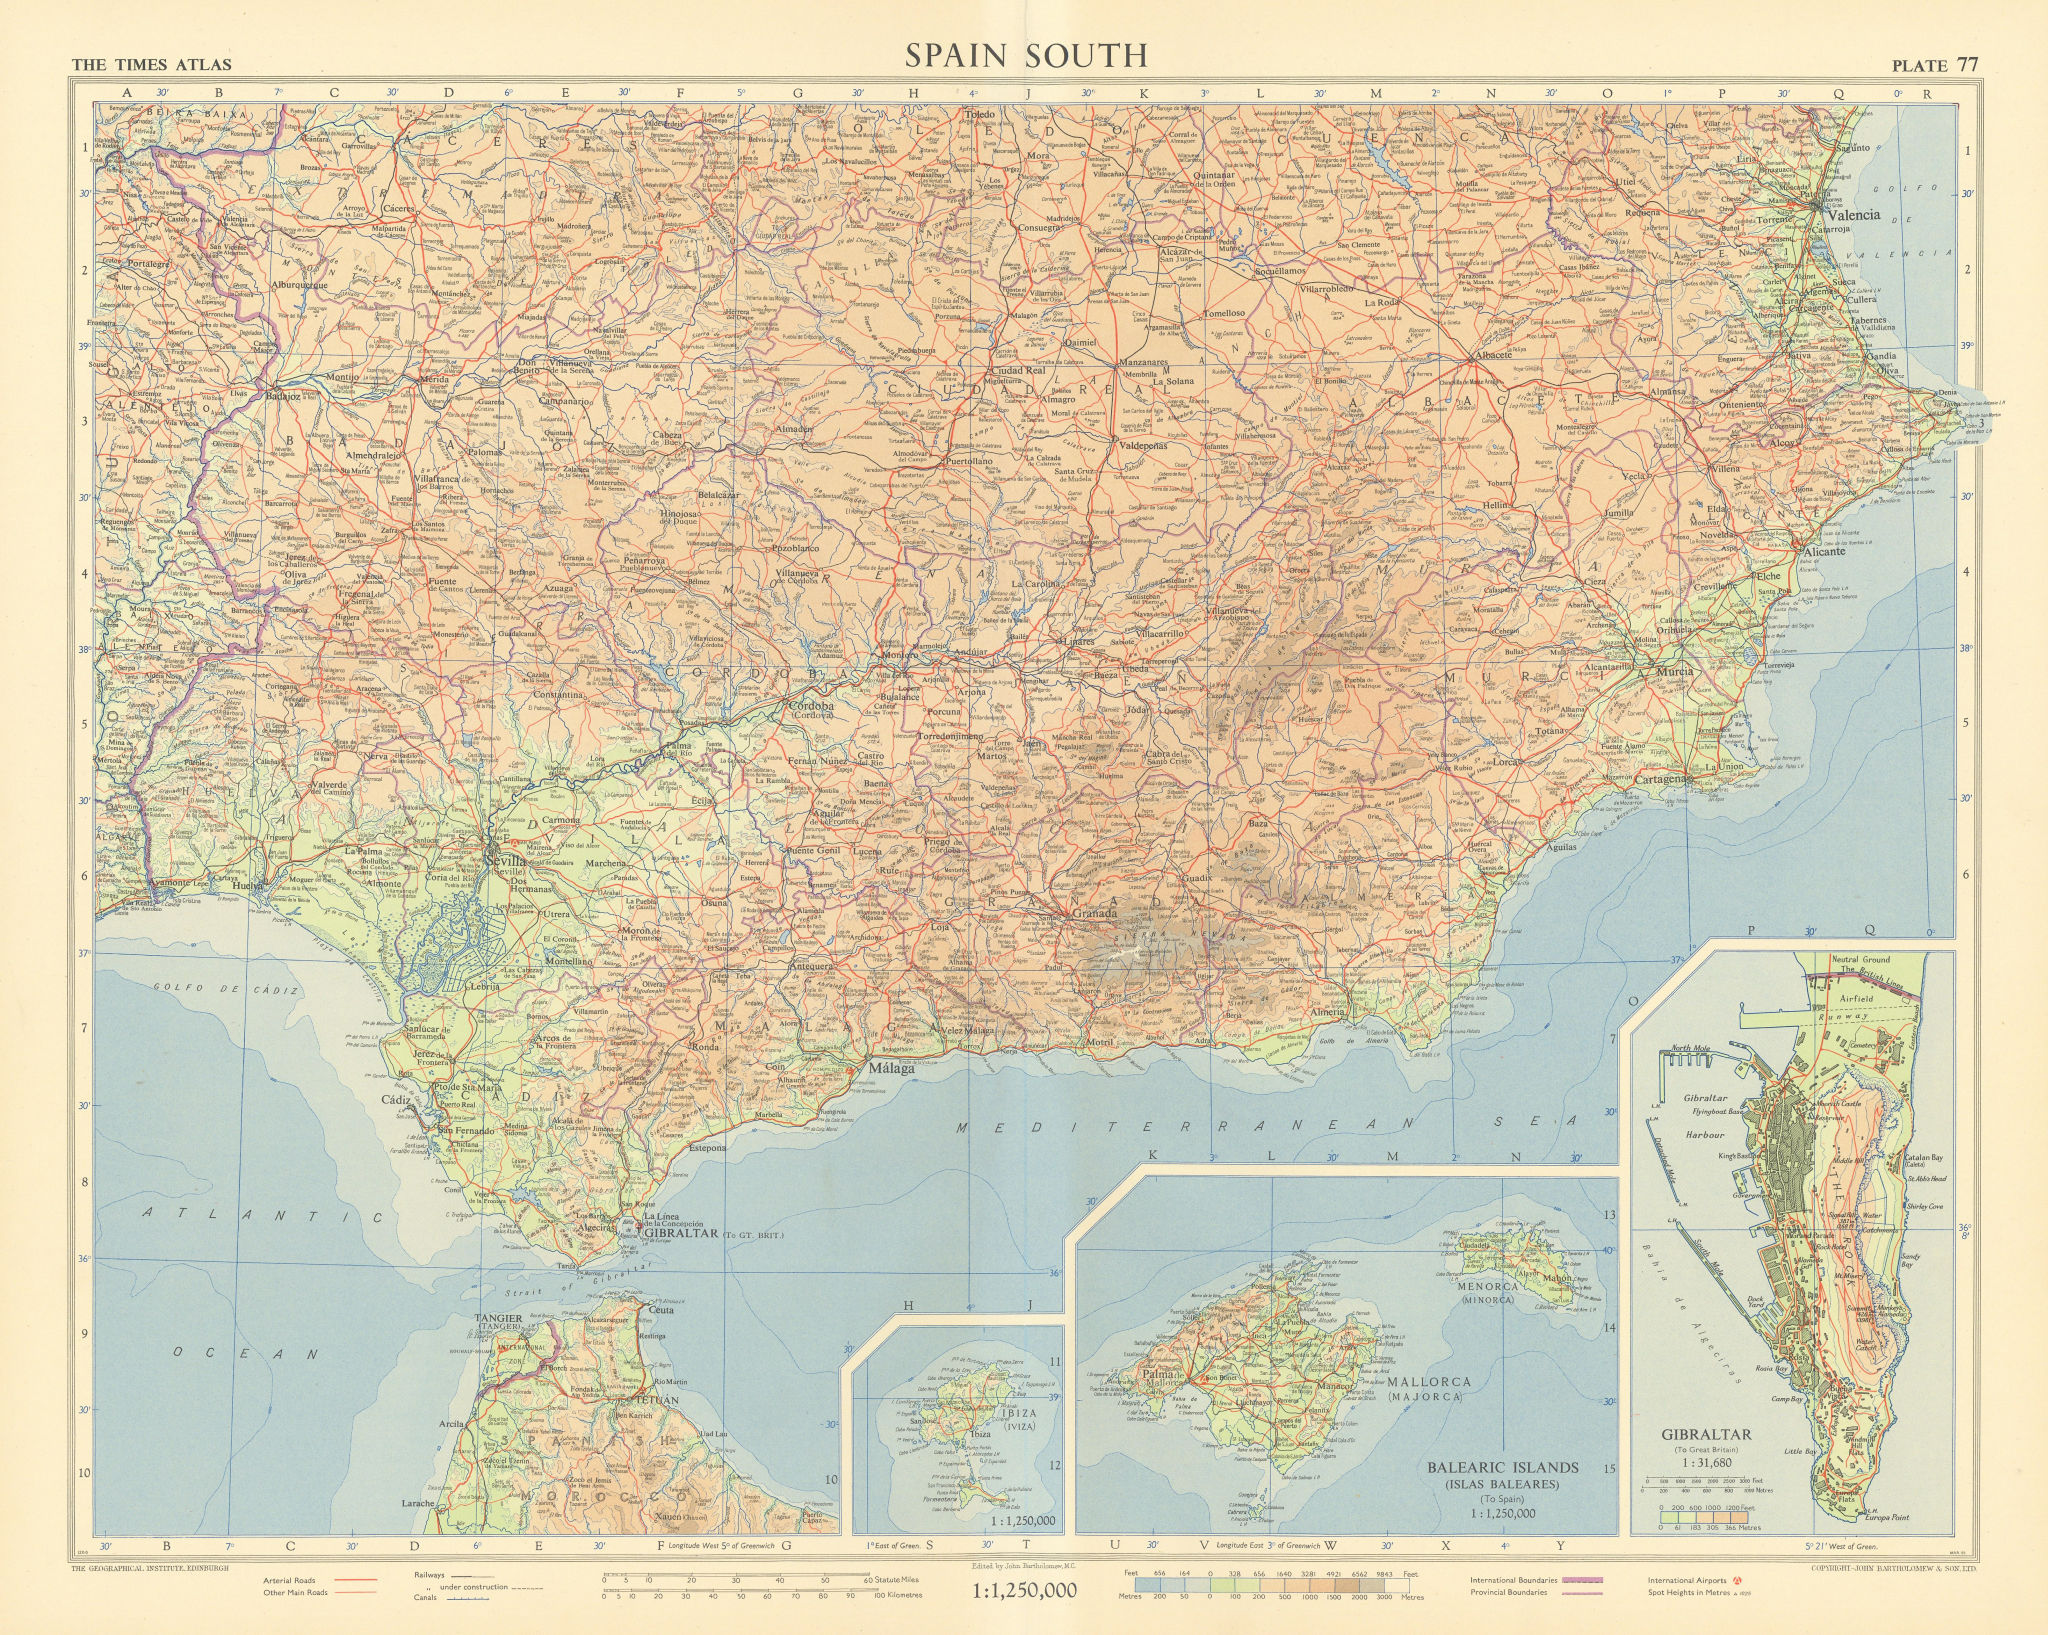 Spain south. Andalucia. Tangier International Zone. Gibraltar. TIMES 1956 map